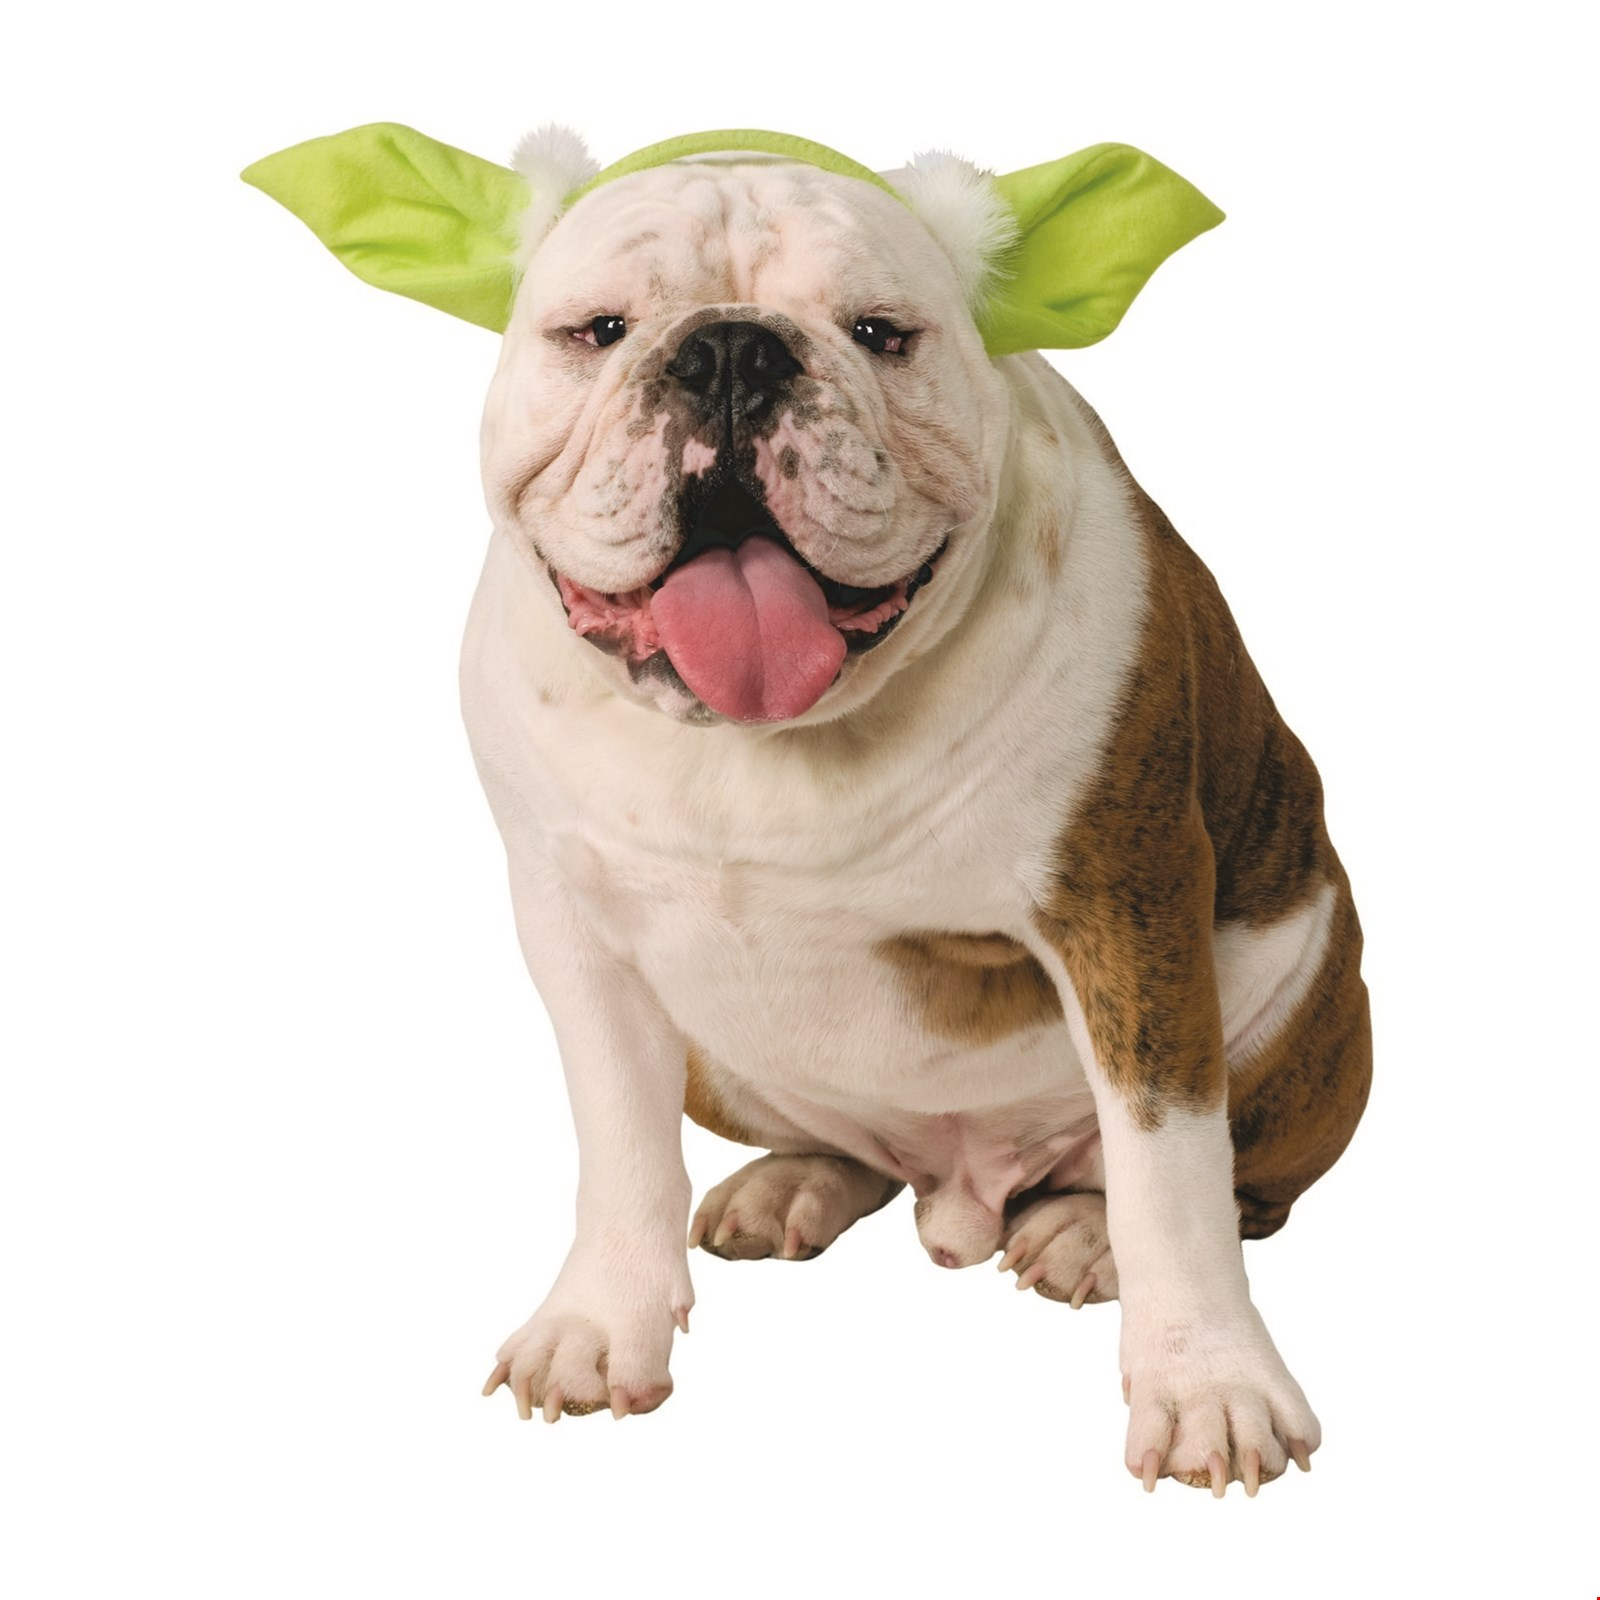 Star Wars Yoda Ears Halloween Costume for Pets